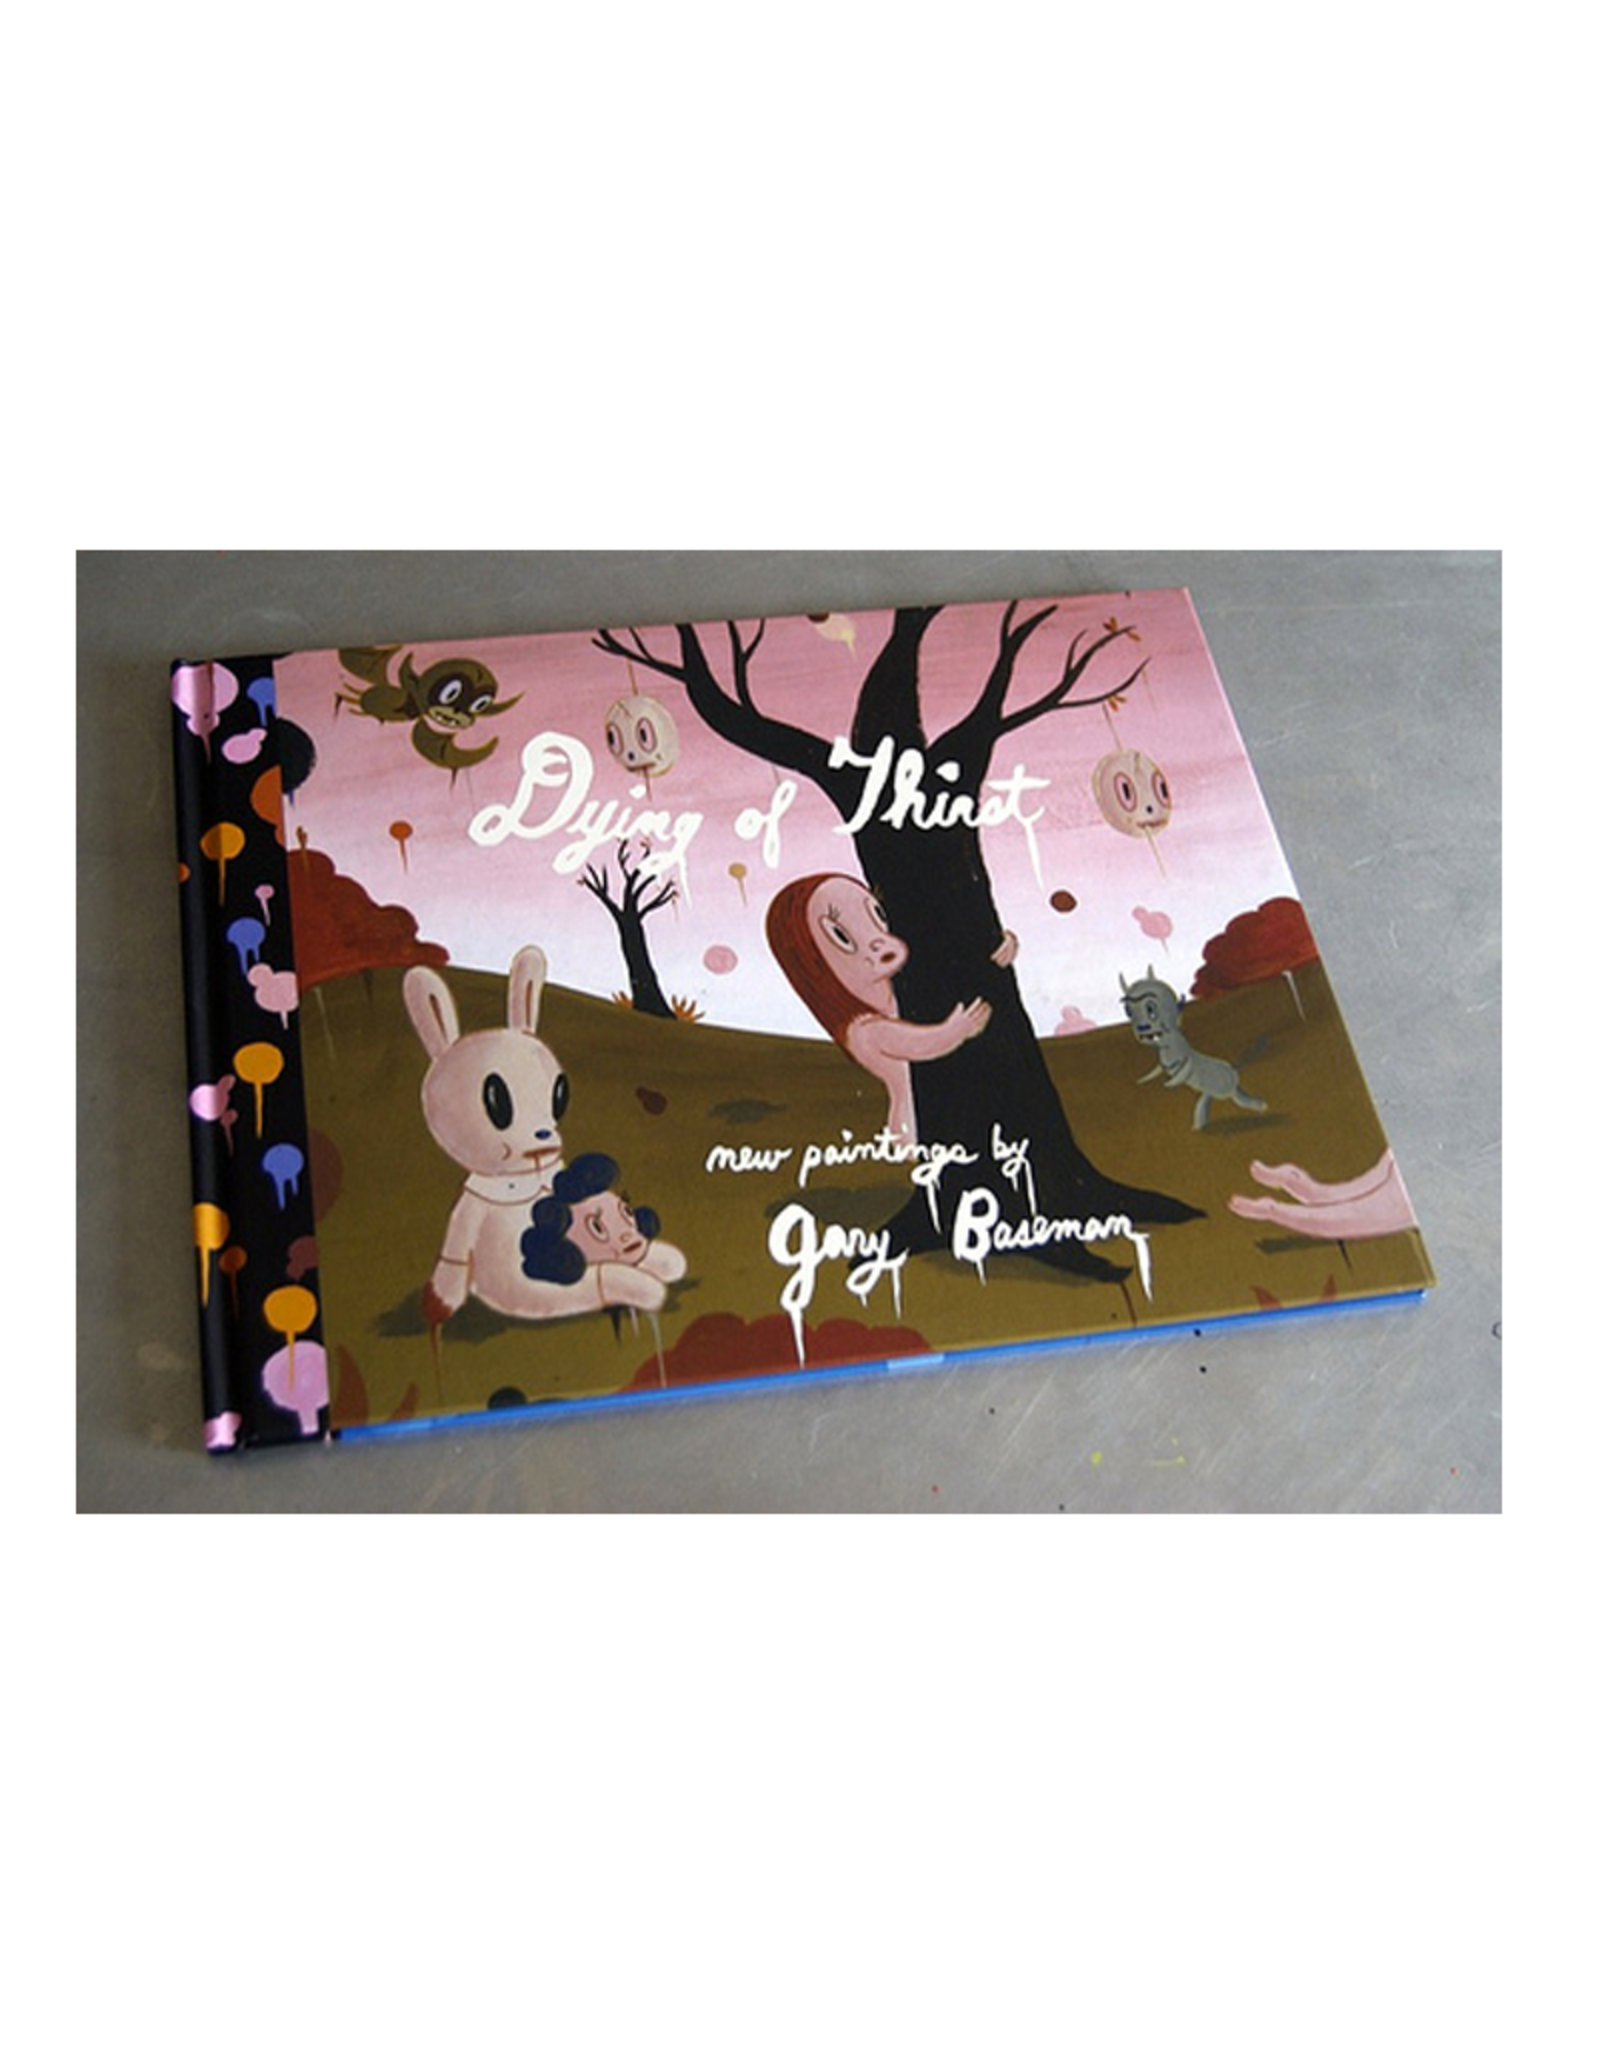 Dying of Thirst Book by Gary Baseman